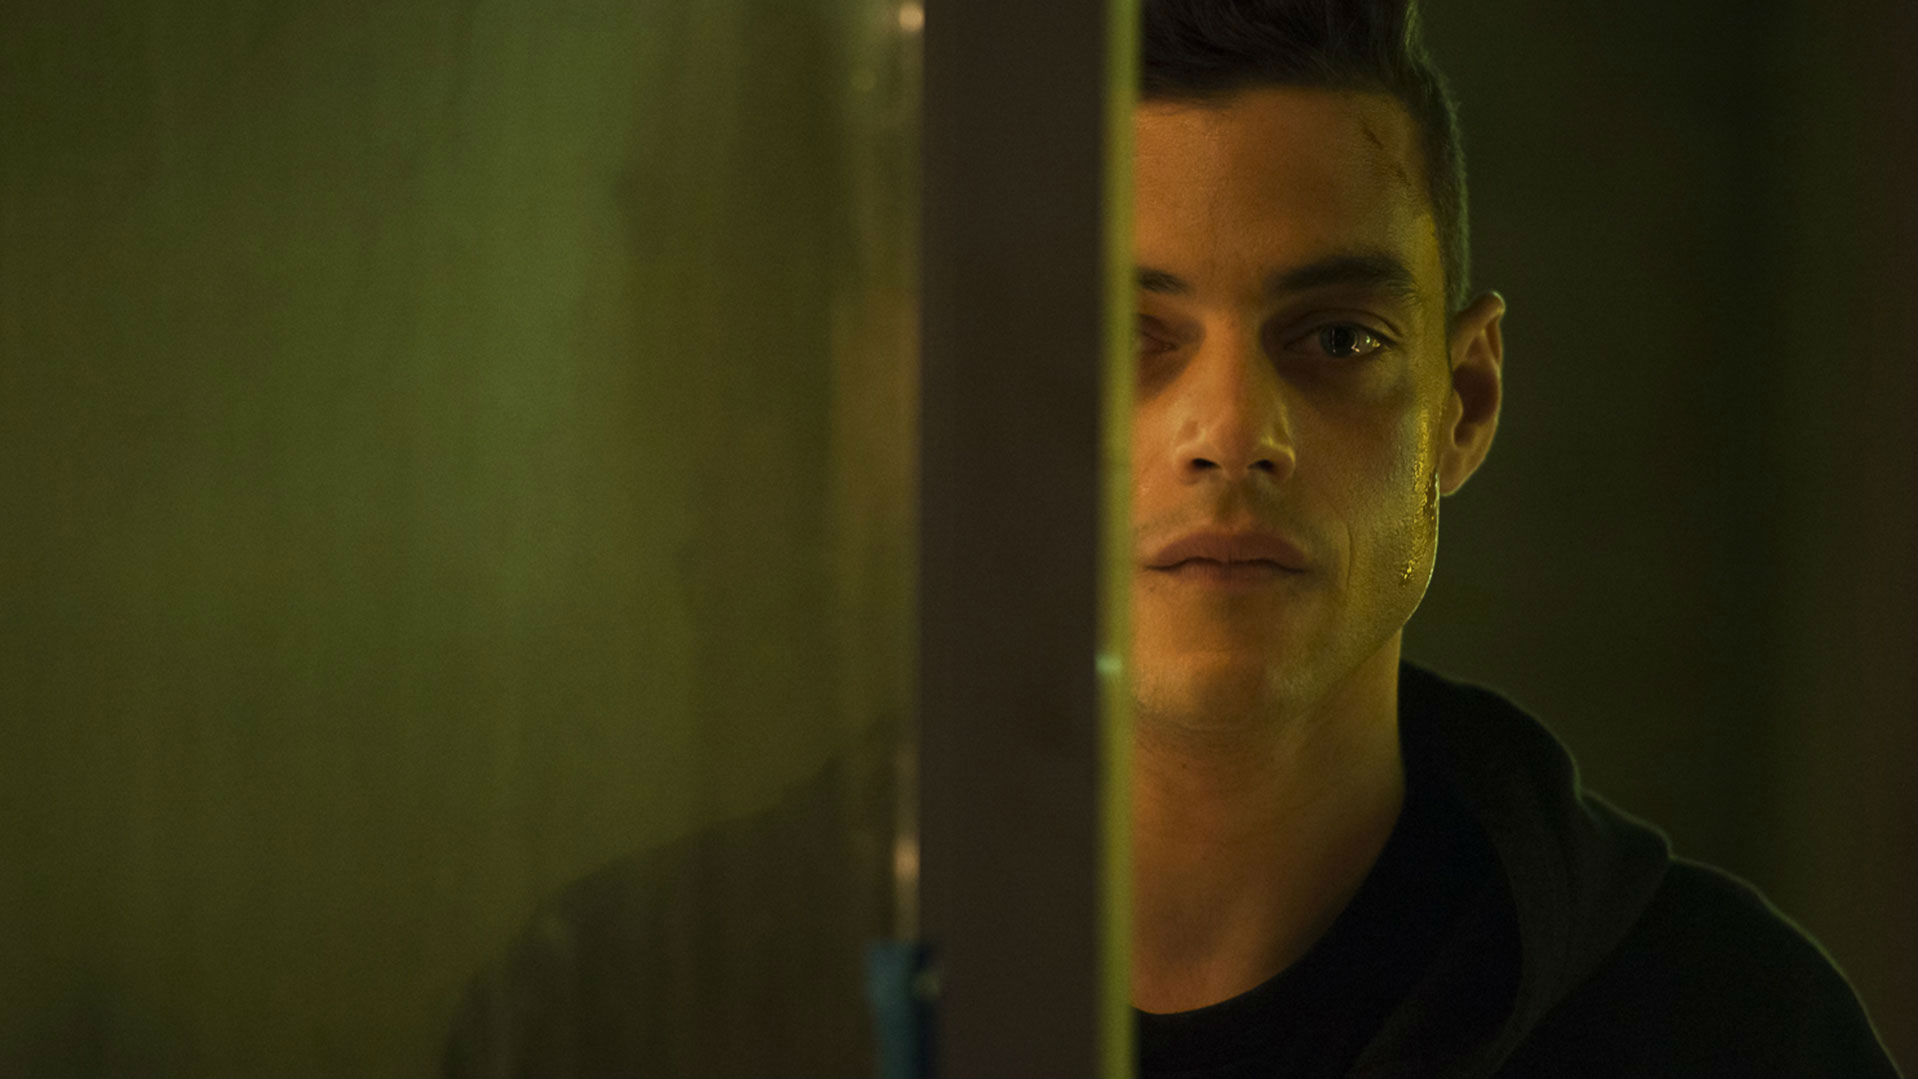 Elliot Mr. Robot USA Network